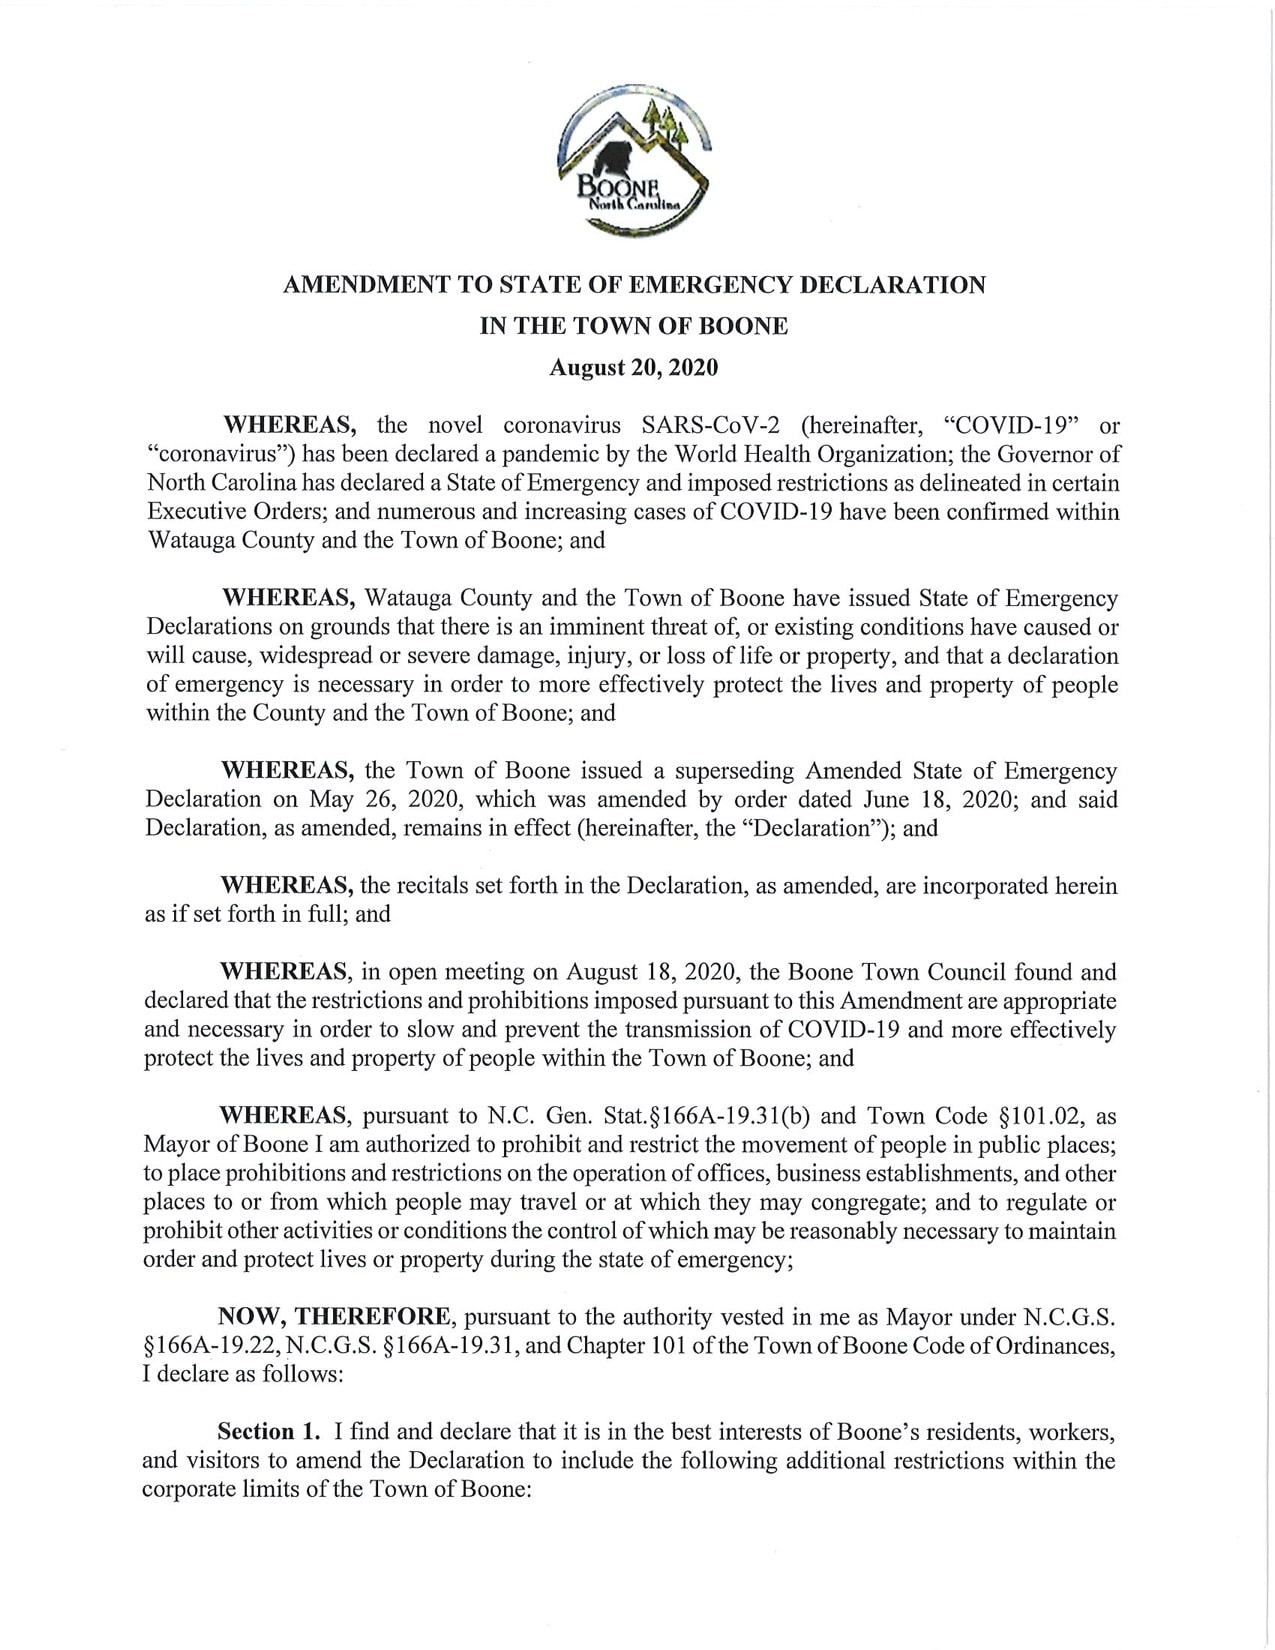 Town of Boone amends State of Emergency Declaration